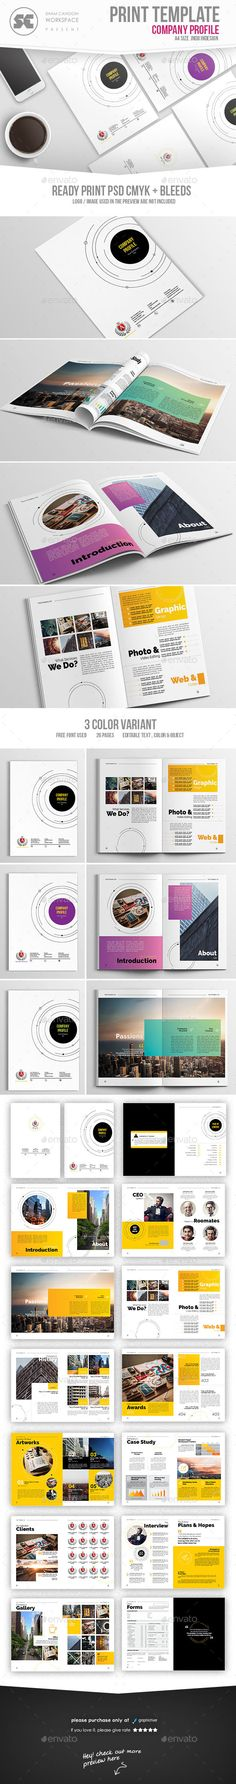 Company Profile Pages Company Profile Brochure Template And - Company profile brochure template